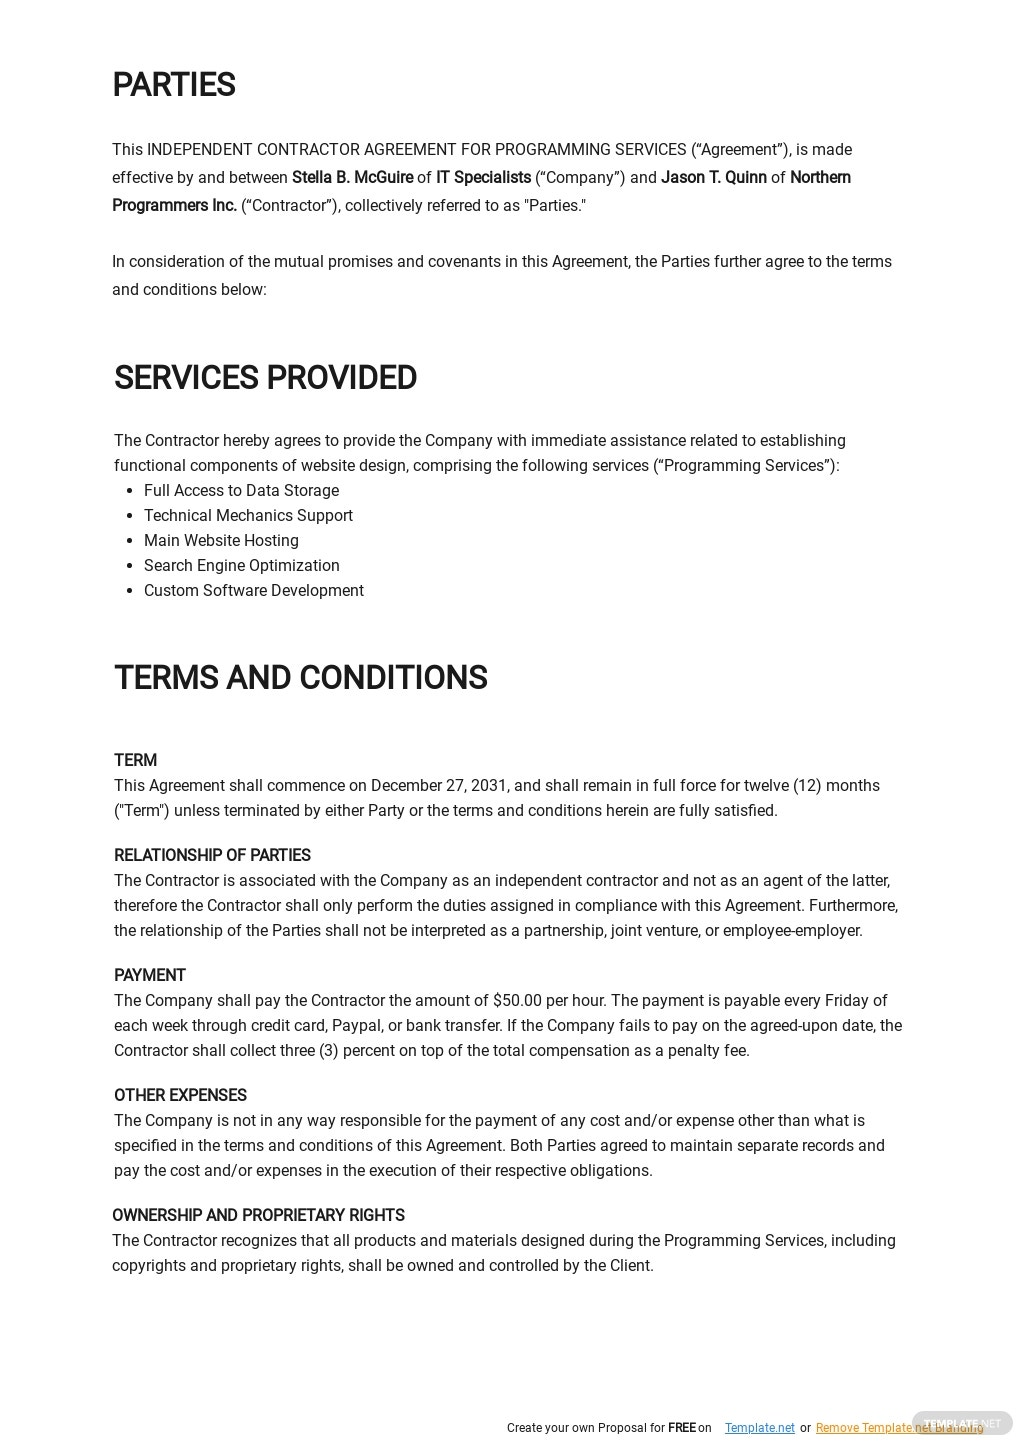 Independent Contractor Agreement For Programming Services Template 1.jpe